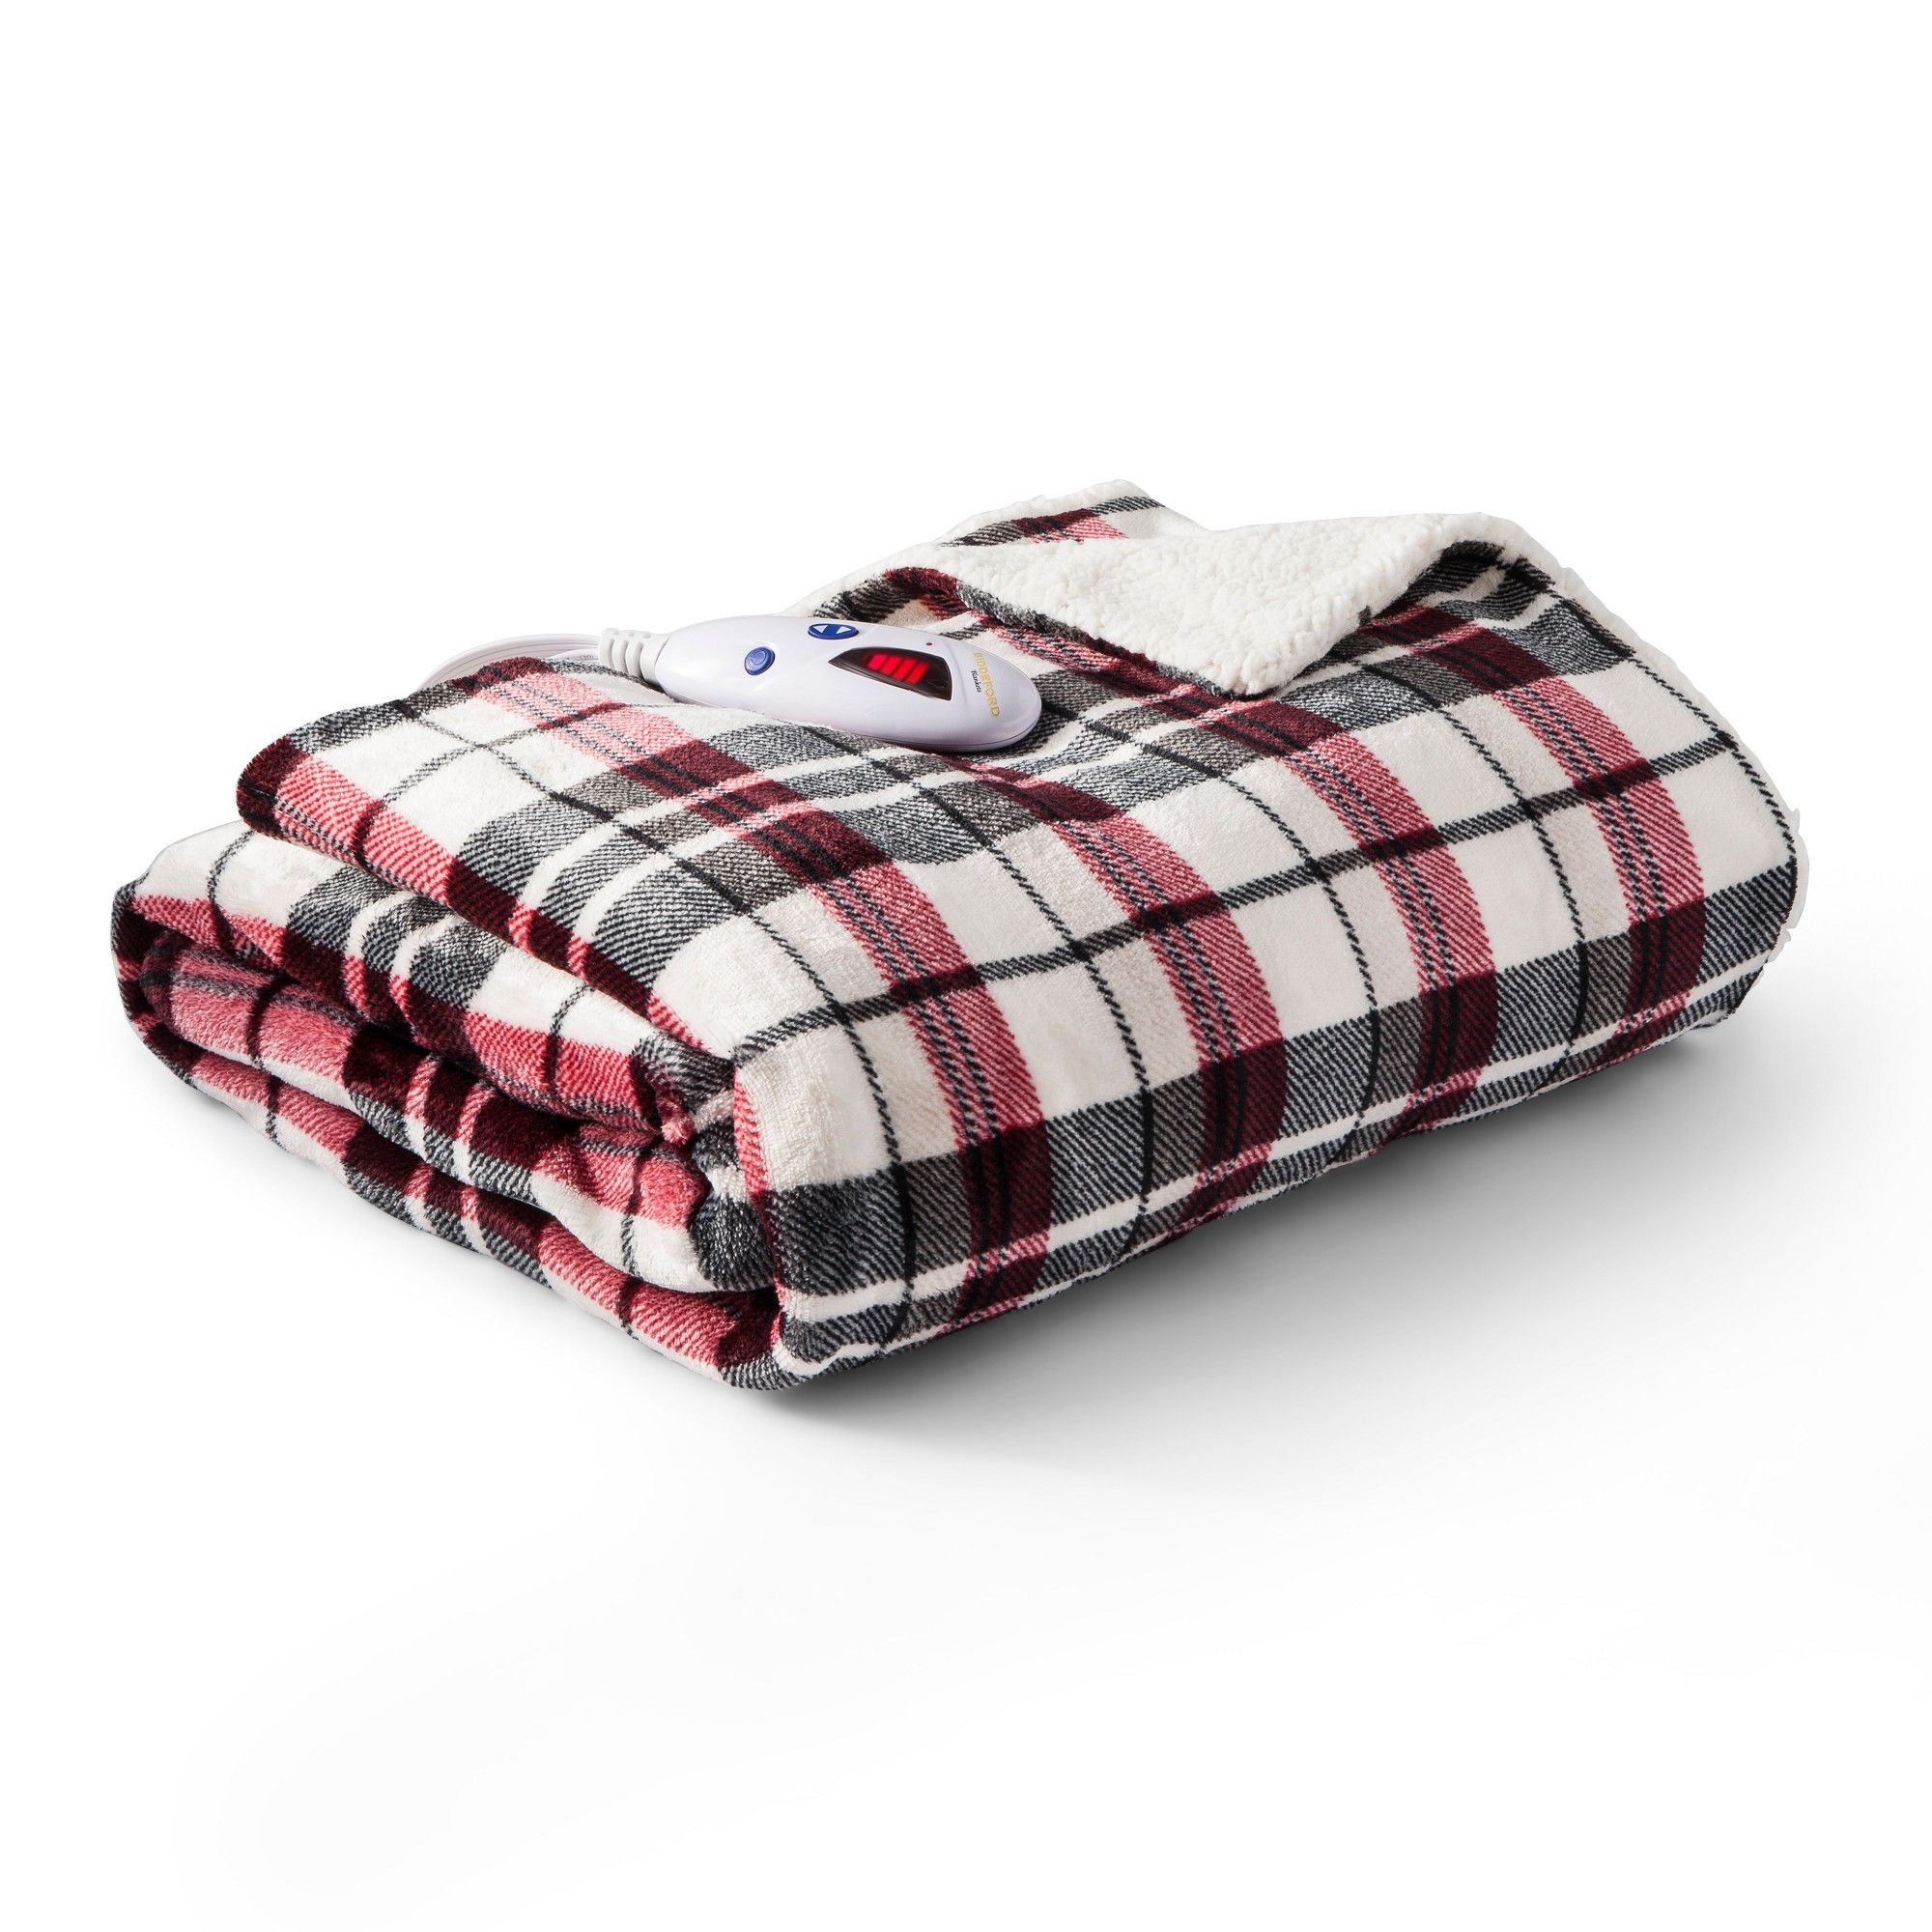 velour with sherpa plaid heated throw 62 x50 linen biddeford